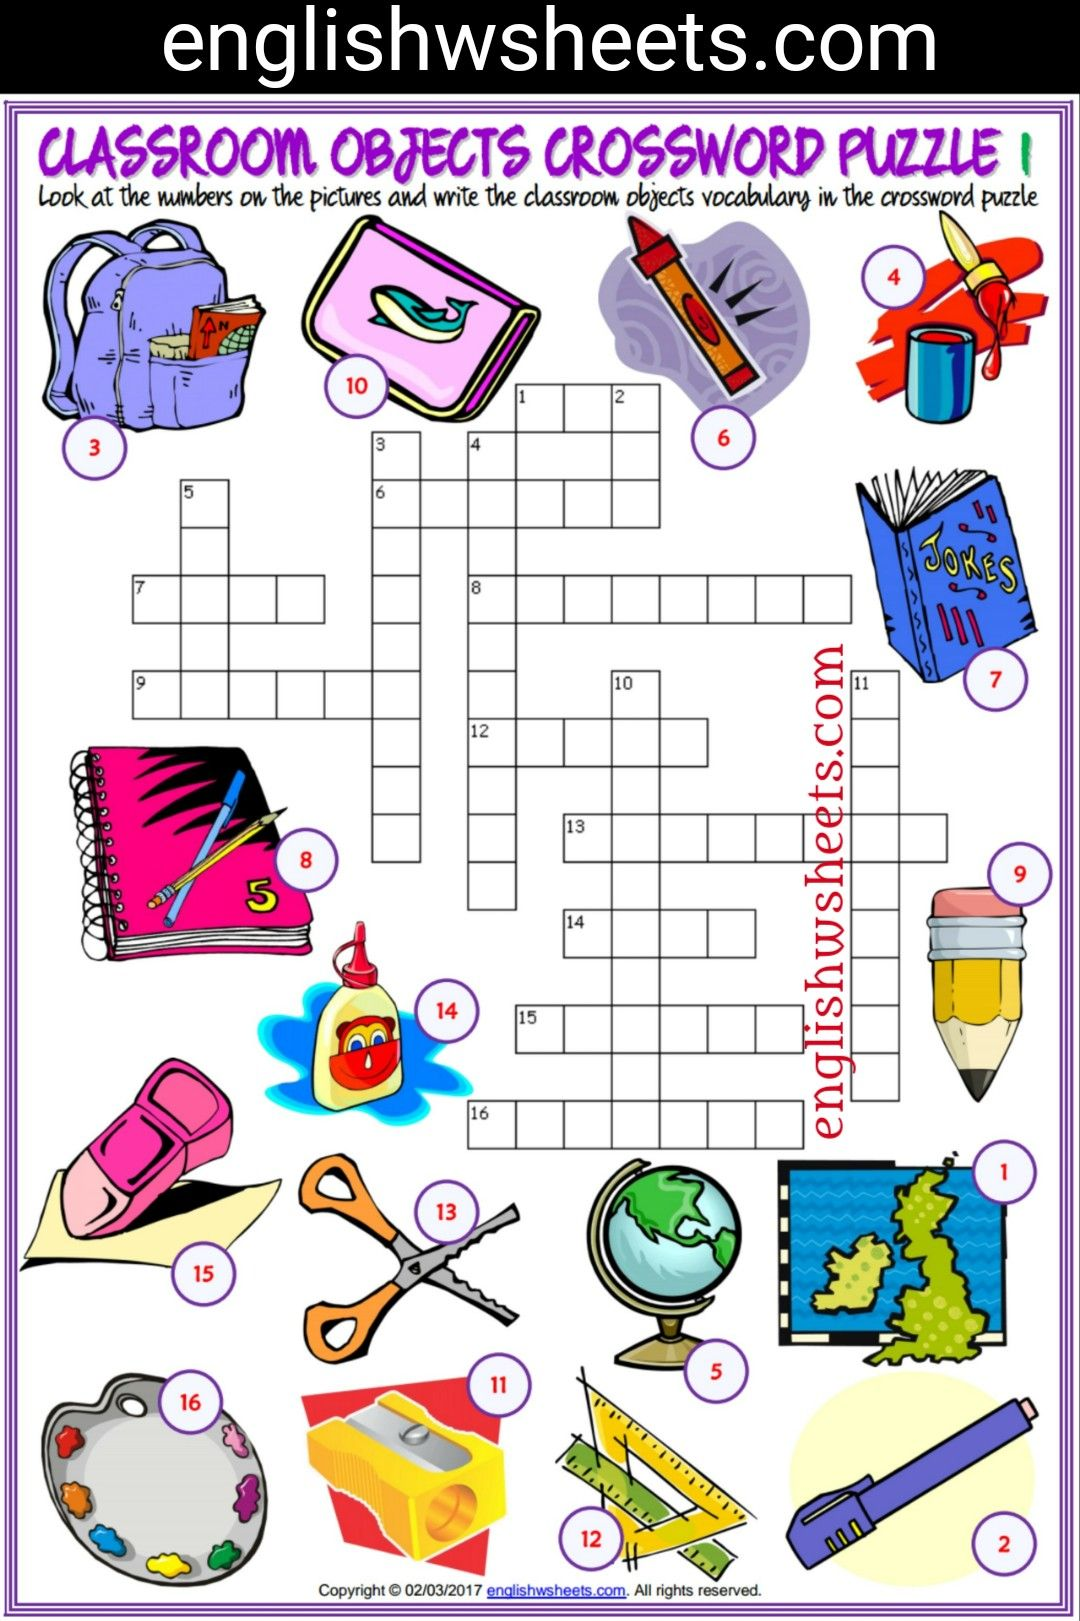 Classroom Objects Esl Printable Crossword Puzzle Worksheets For Kids Classroom Objects Esl